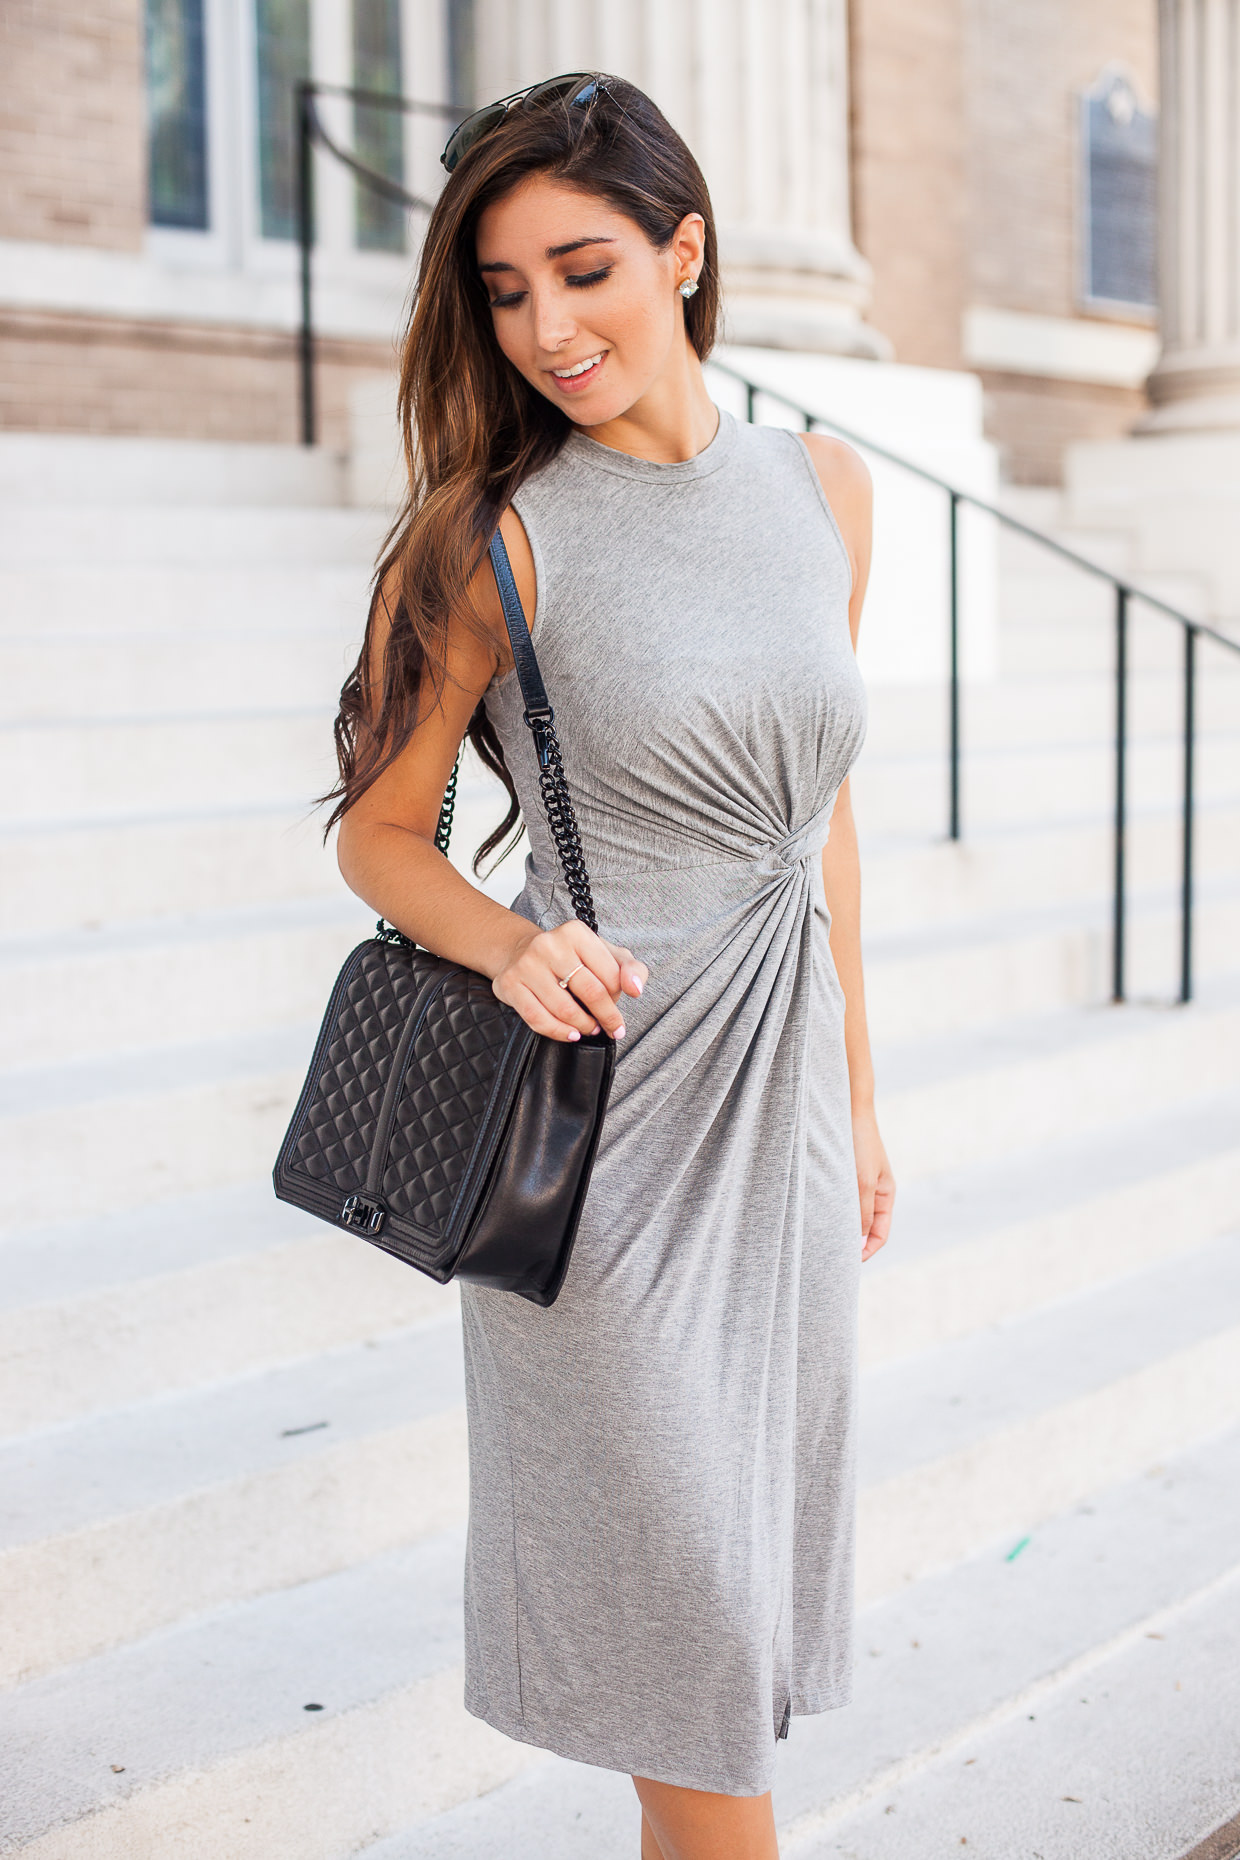 Casual Chic The Darling Detail